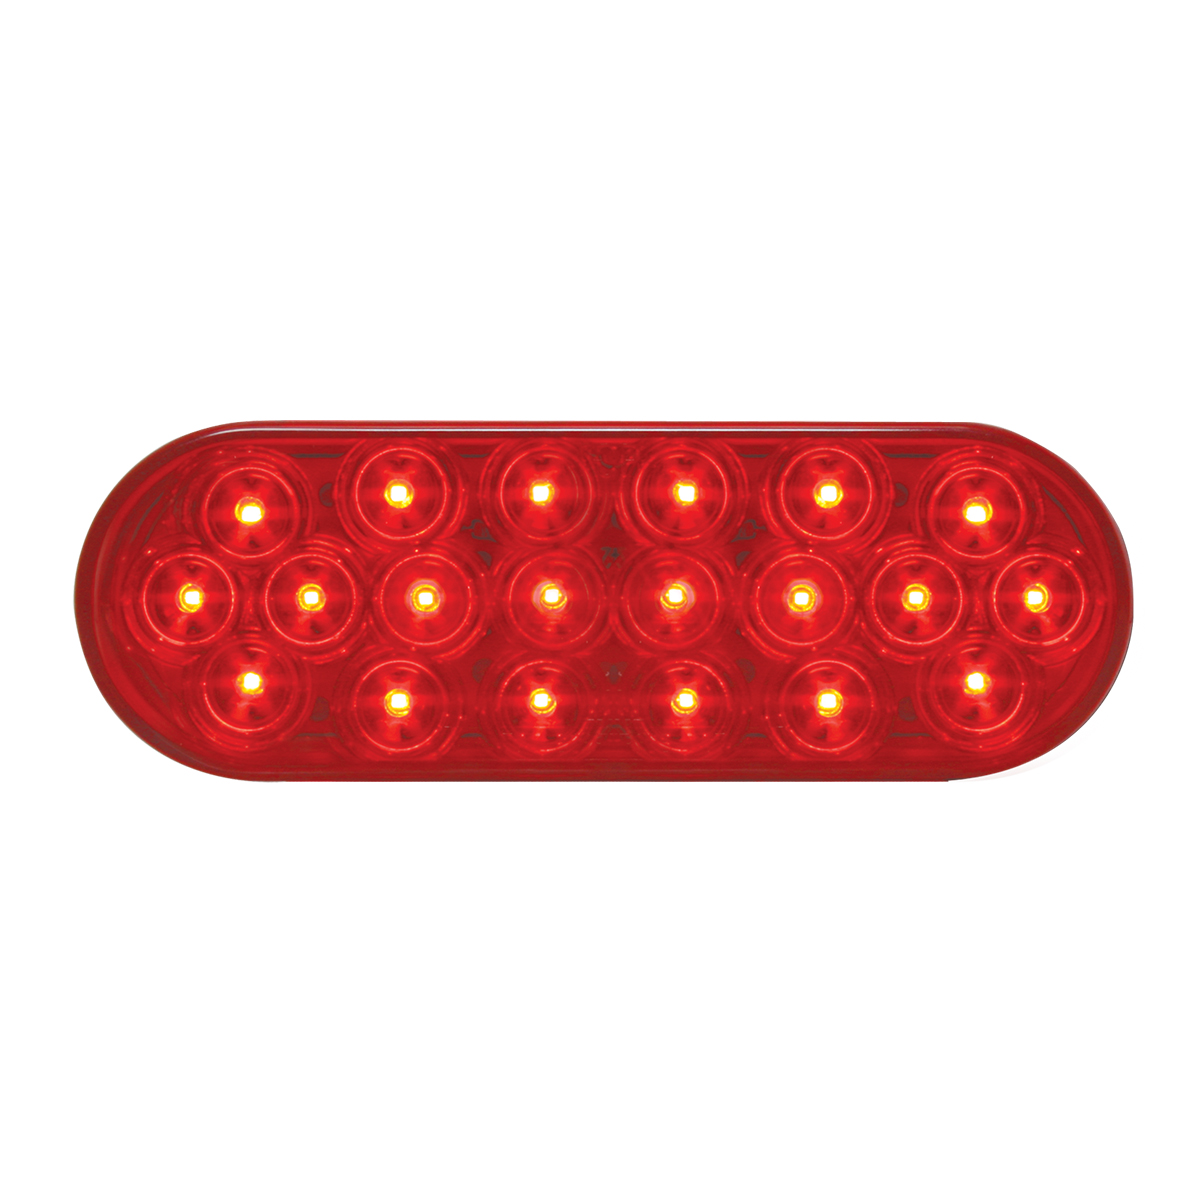 #87721 Oval Fleet LED Flat Red/Red Light - Slanted